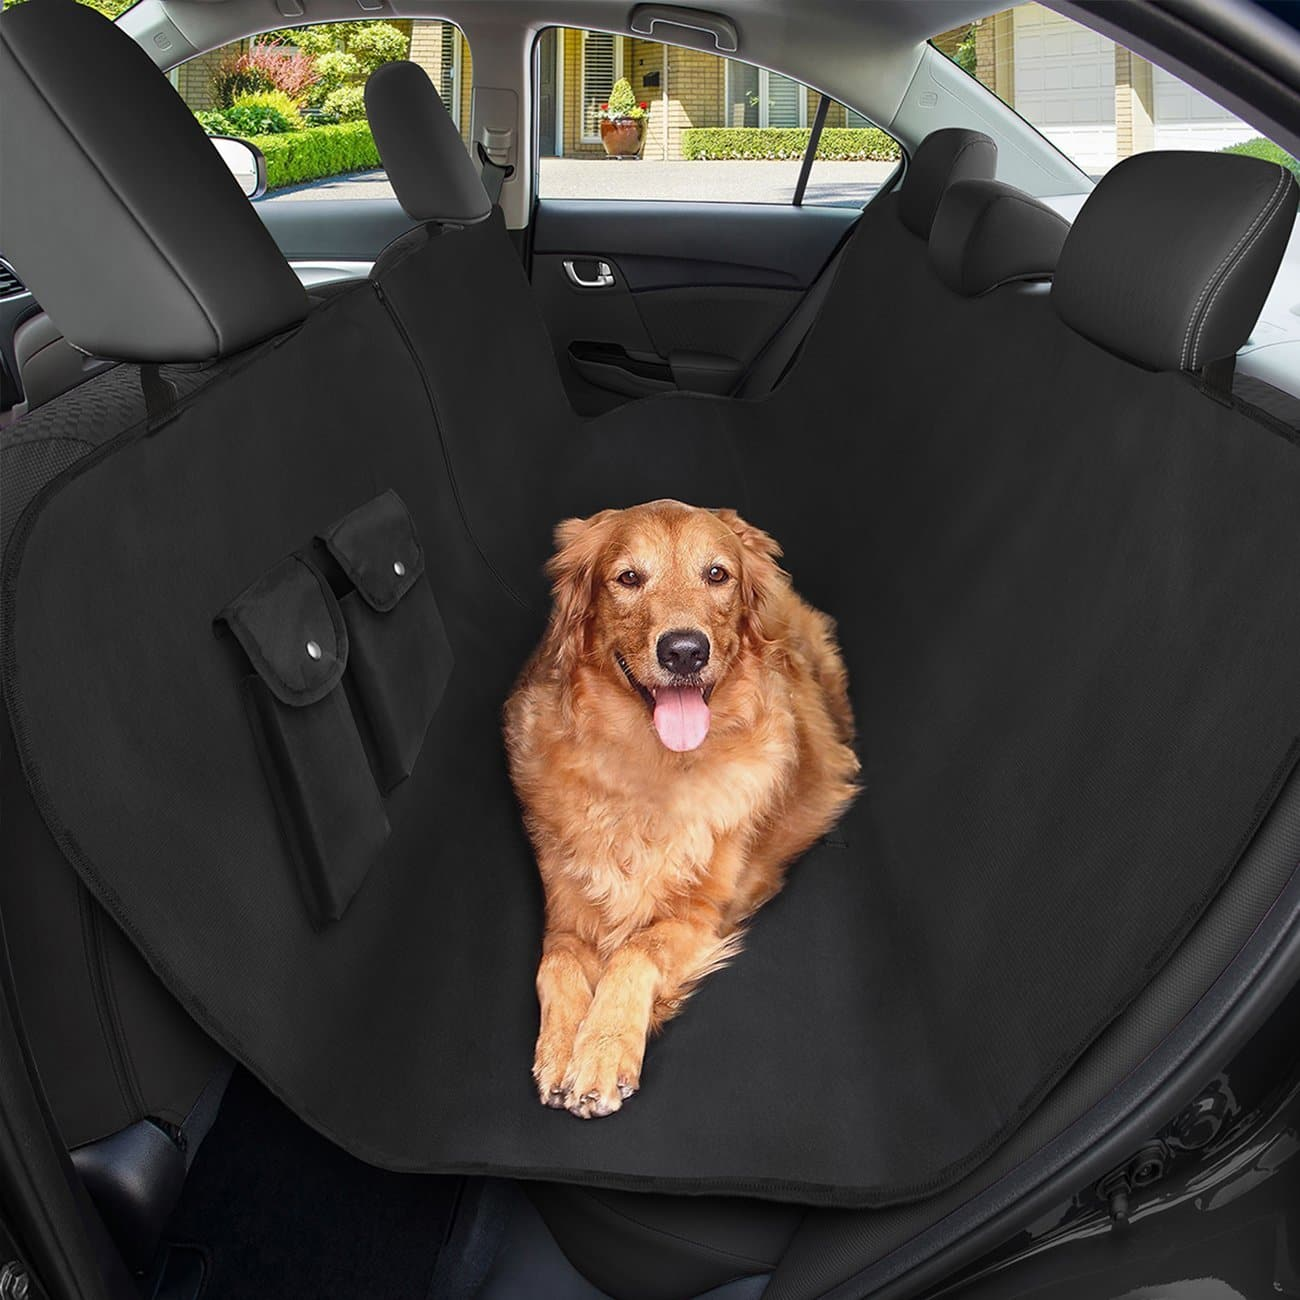 Shine Hai Waterproof & Scratch Proof Dog Seat Cover $10